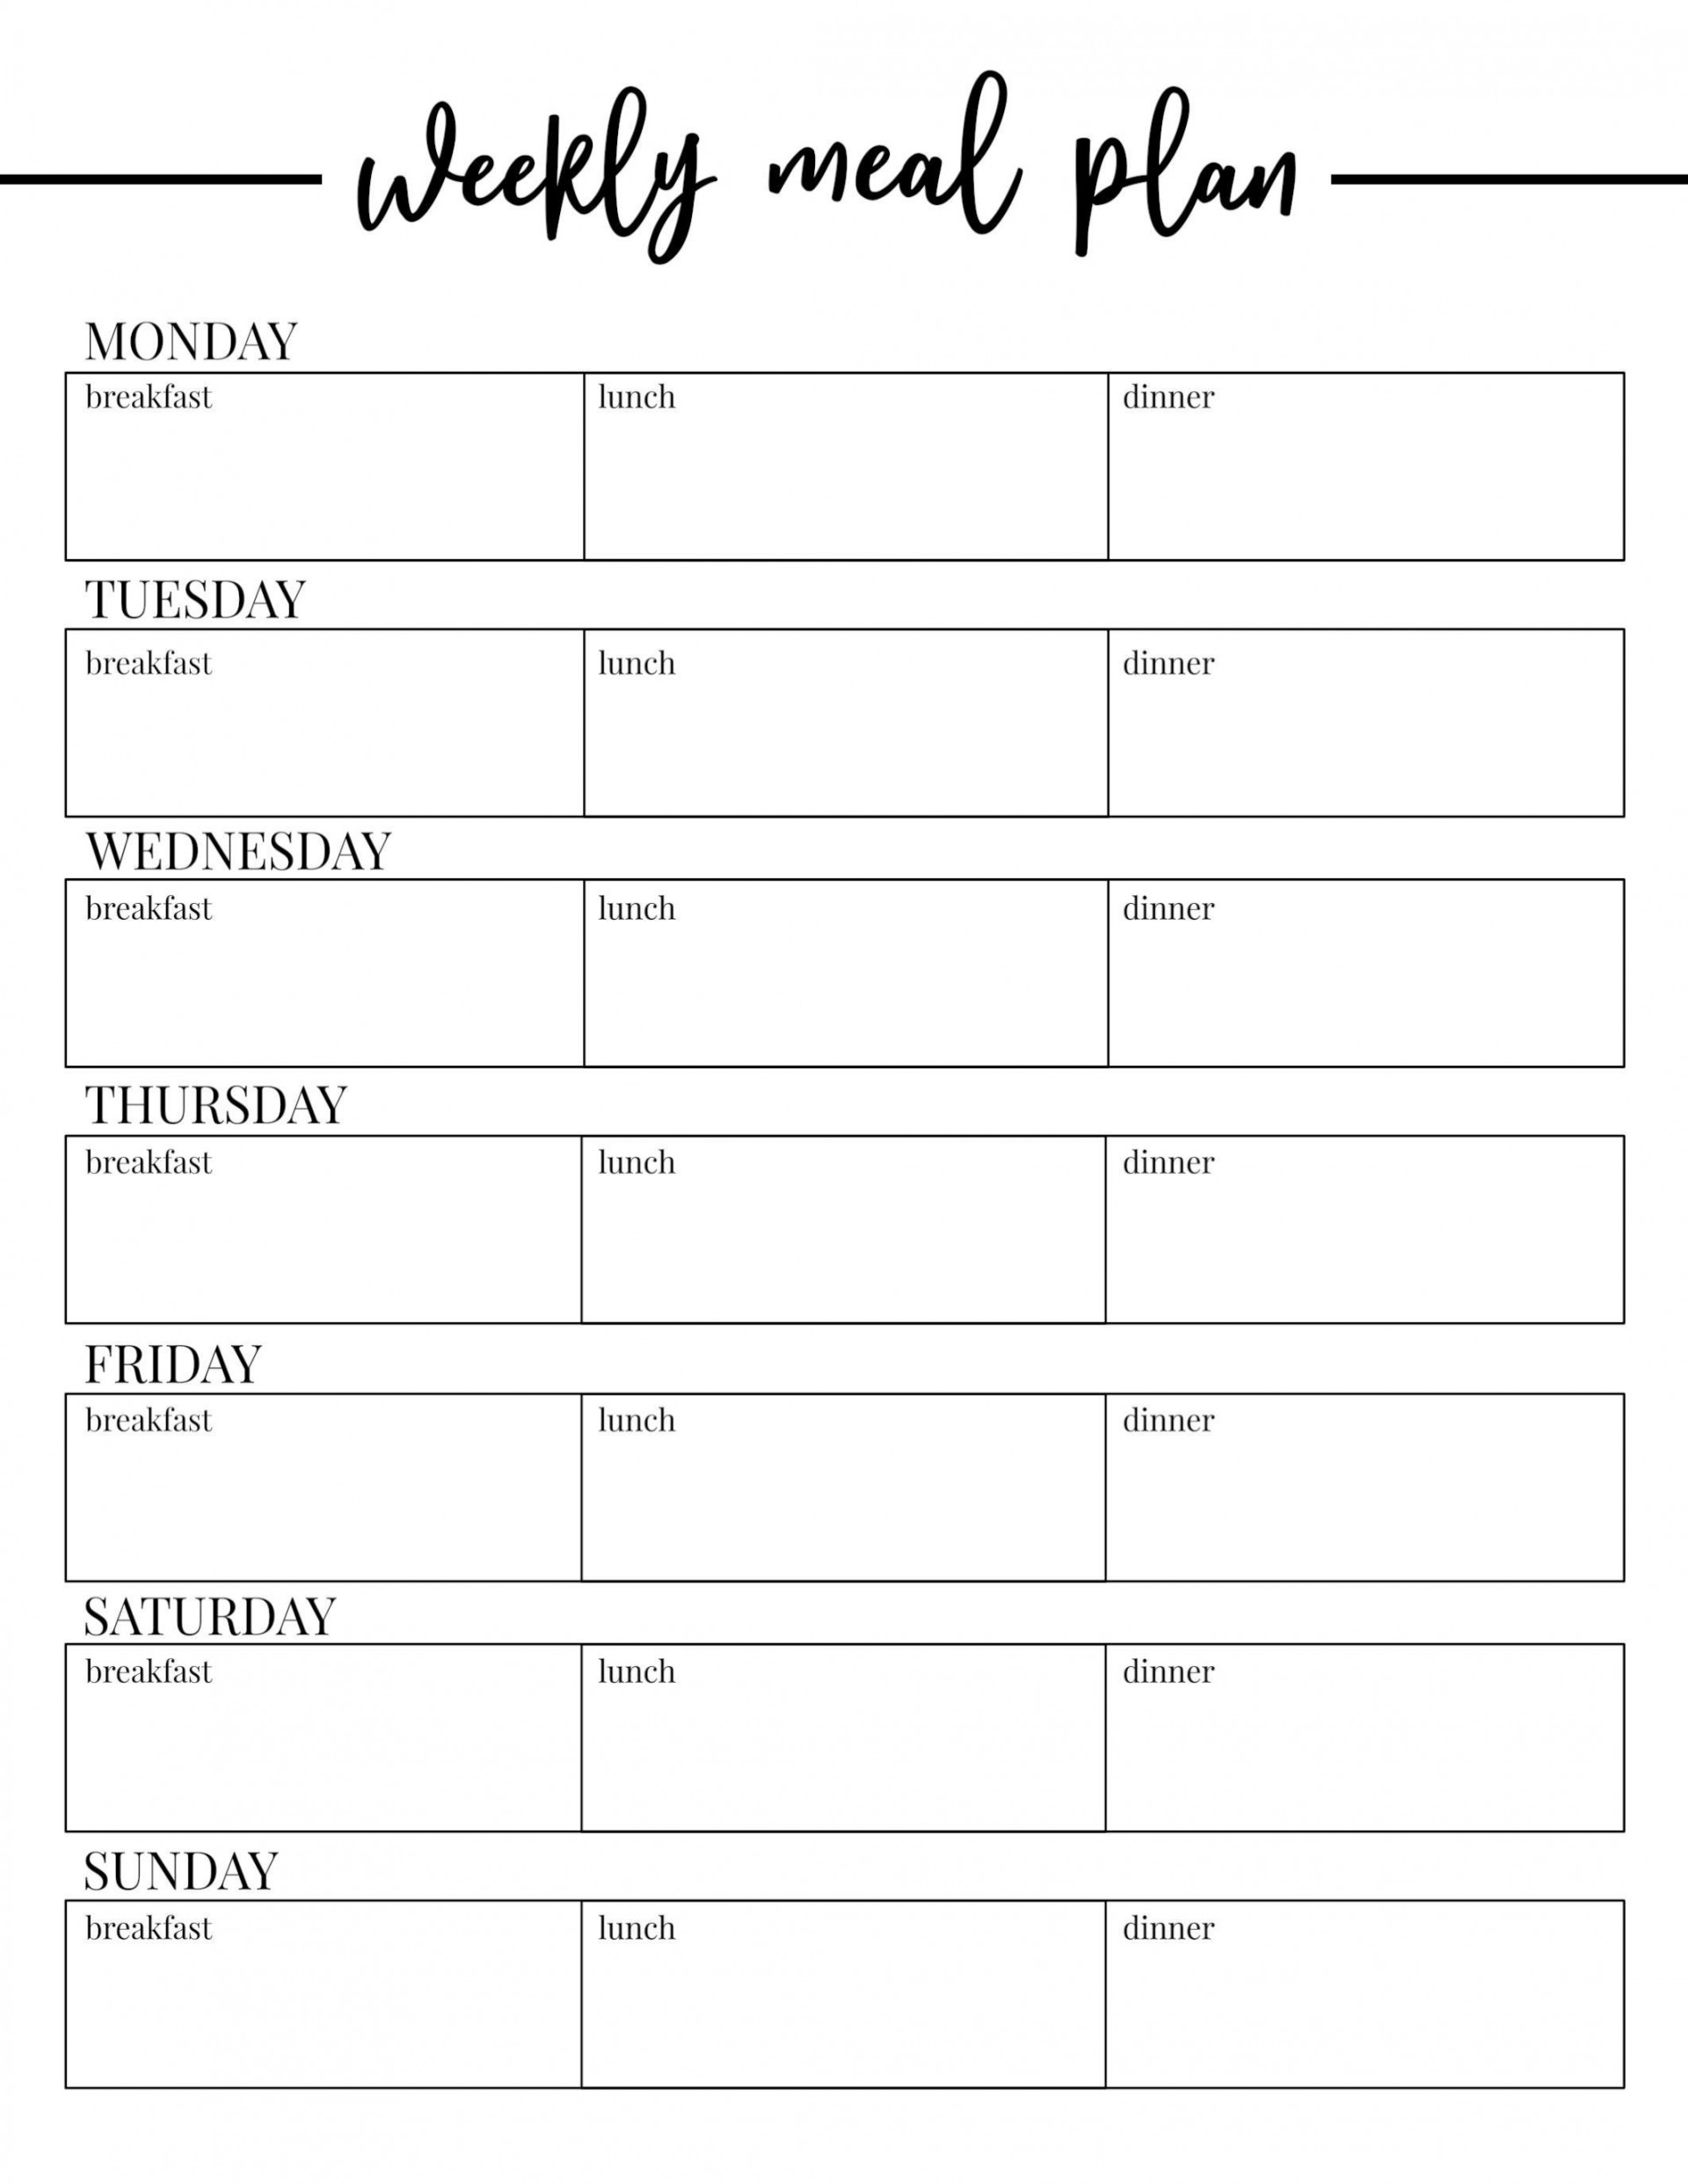 000 Staggering Weekly Eating Plan Template High Resolution  Food Planner Excel Meal Download1920